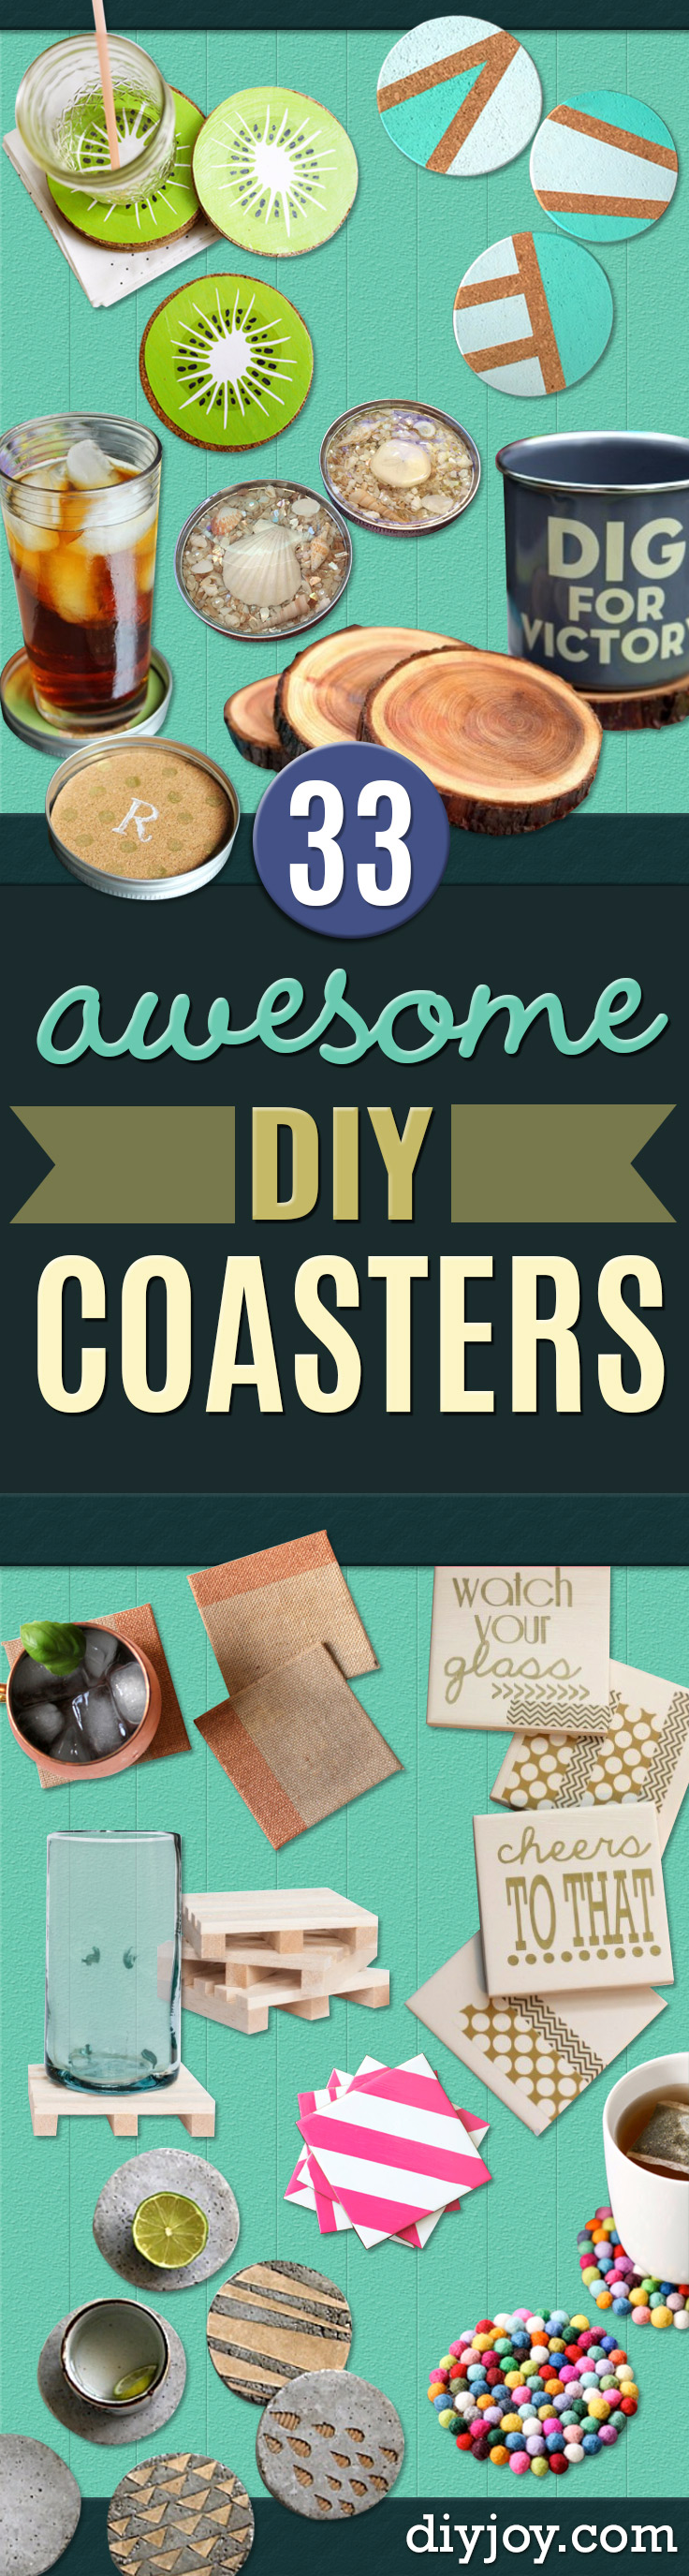 DIY Coasters - Best Quick DIY Gifts and Home Decor - Easy Step by Step Tutorials for DIY Coaster Projects - Mod Podge, Tile, Painted, Photo and Sewing Projects - Cool Christmas Presents for Him and Her - DIY Projects and Crafts by DIY Joy